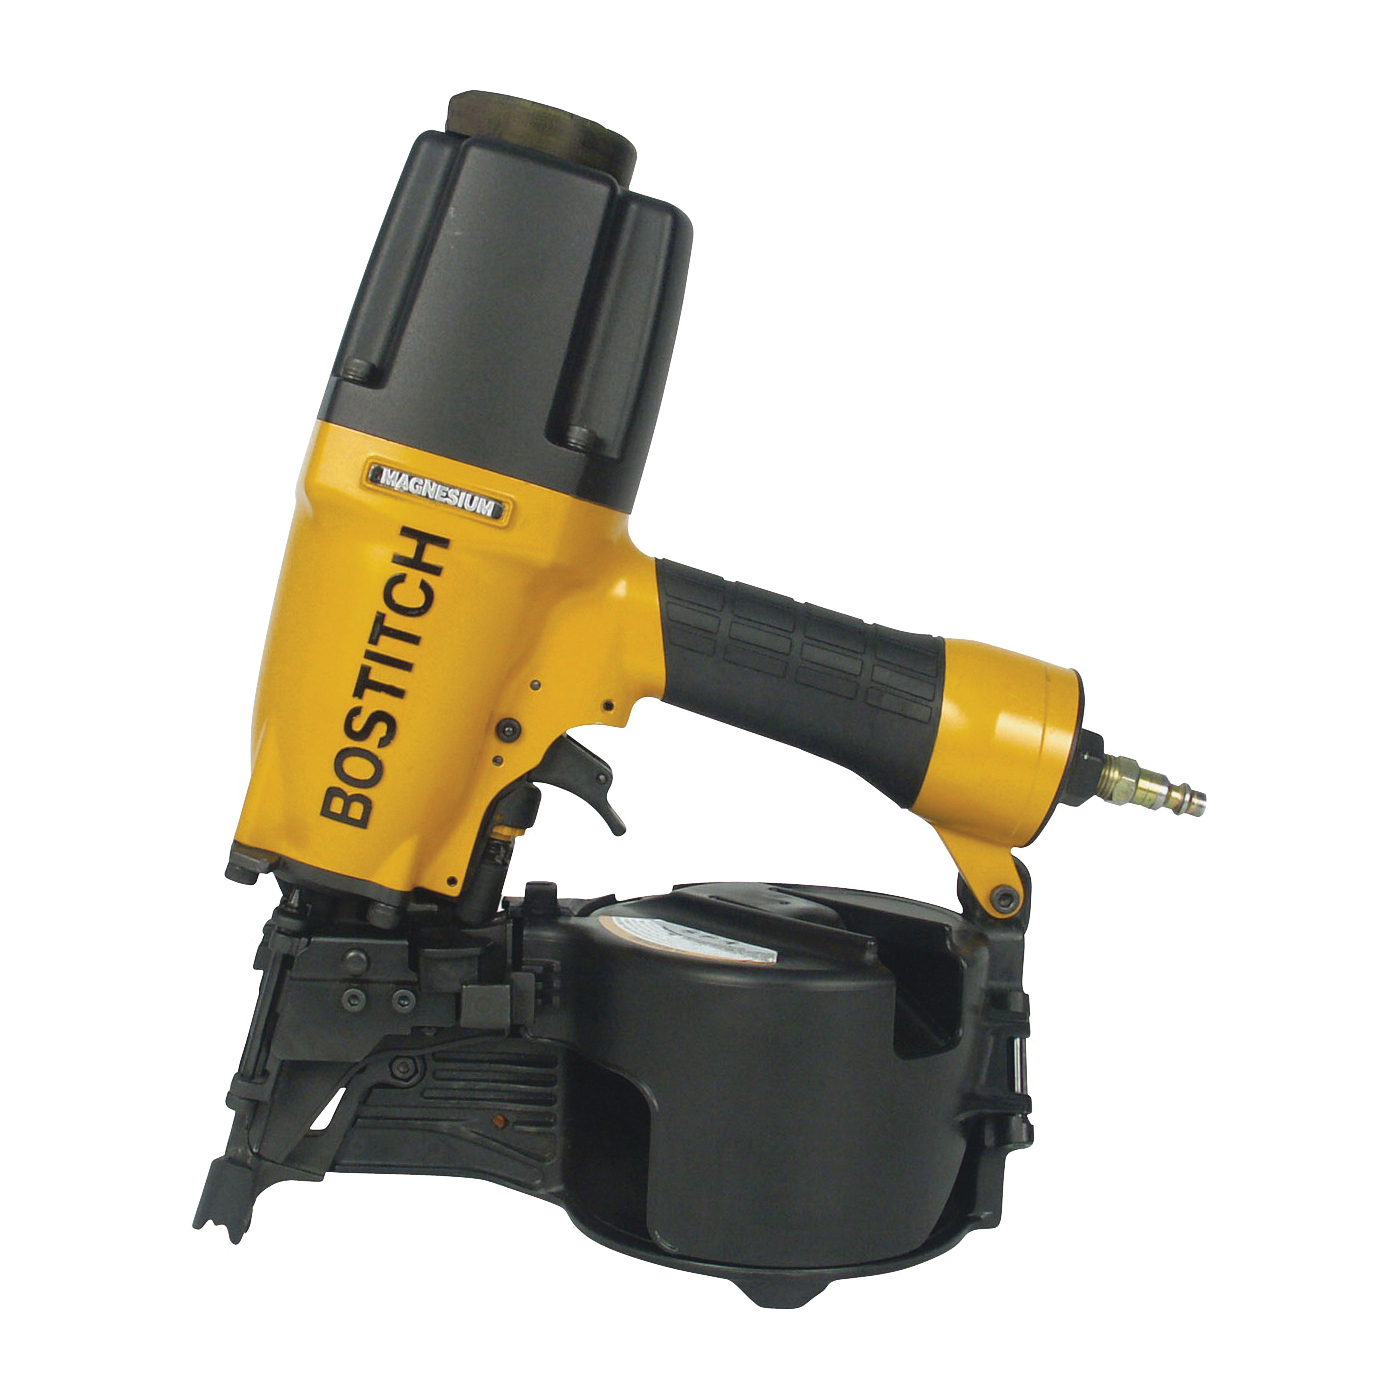 Picture of Bostitch N75C-1 Utility Sheathing/Siding Nailer, 300 Magazine, 15 deg Collation, Wire Weld Collation